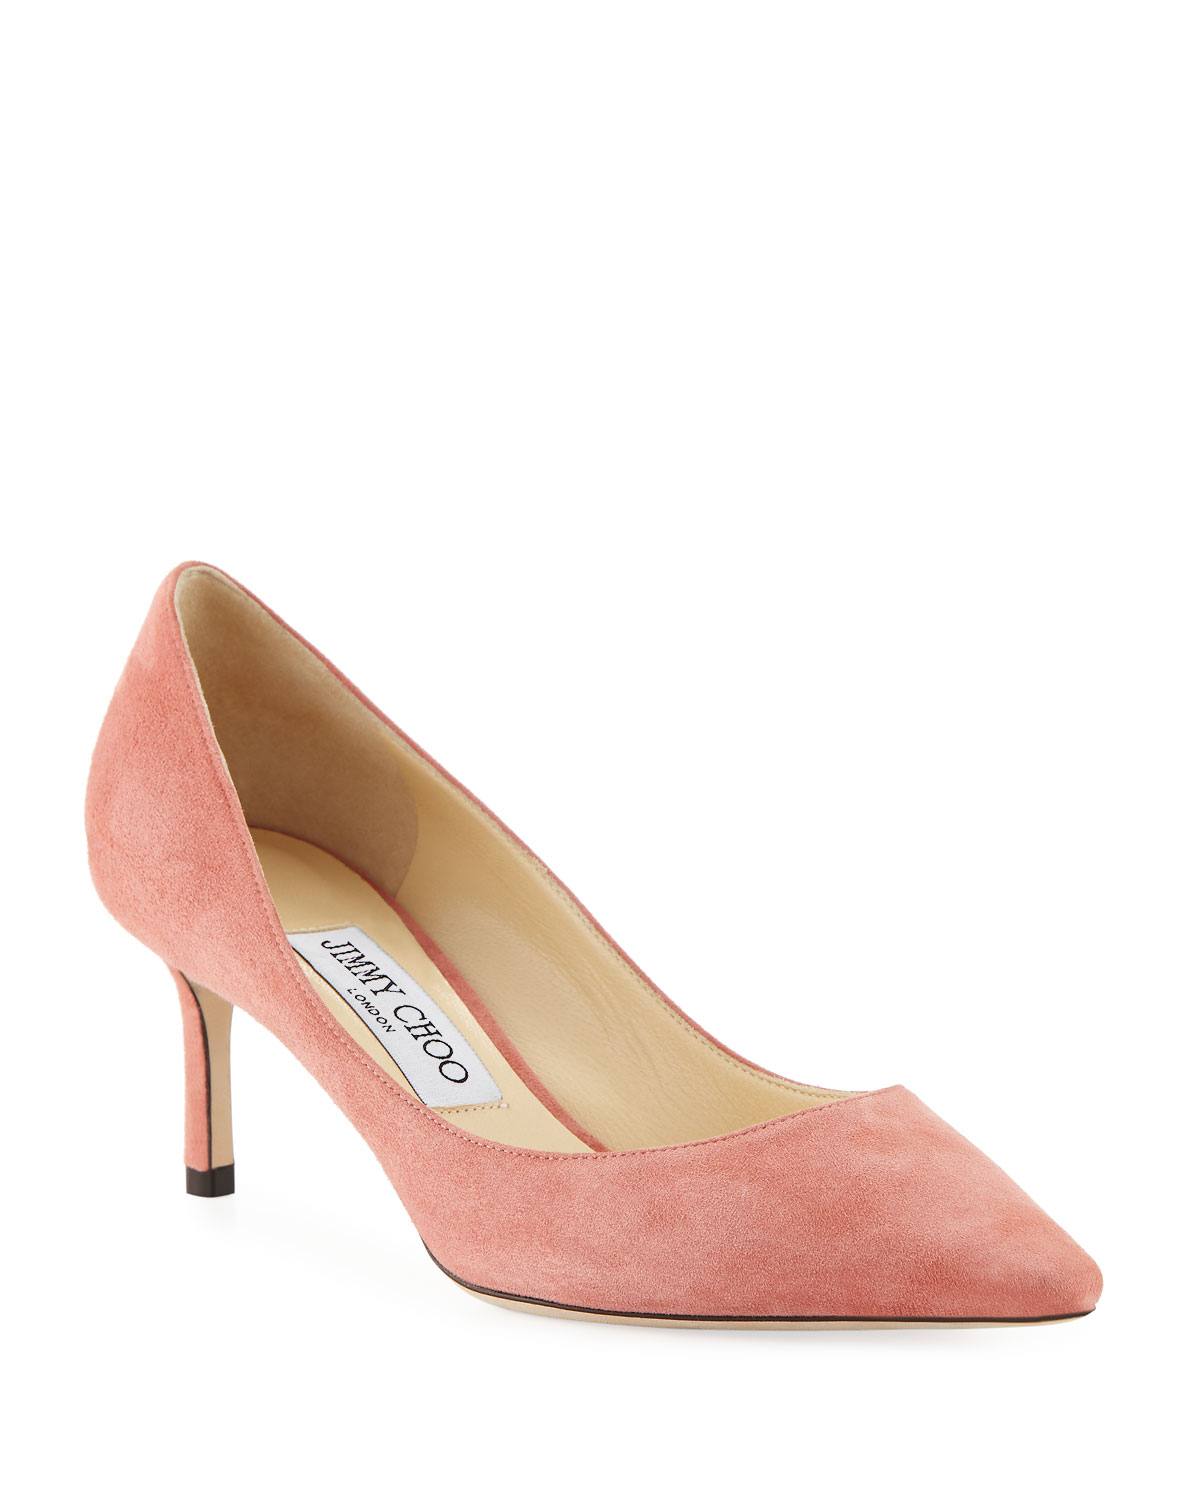 8c28667a0a8 Jimmy Choo Romy 60mm Suede Pumps